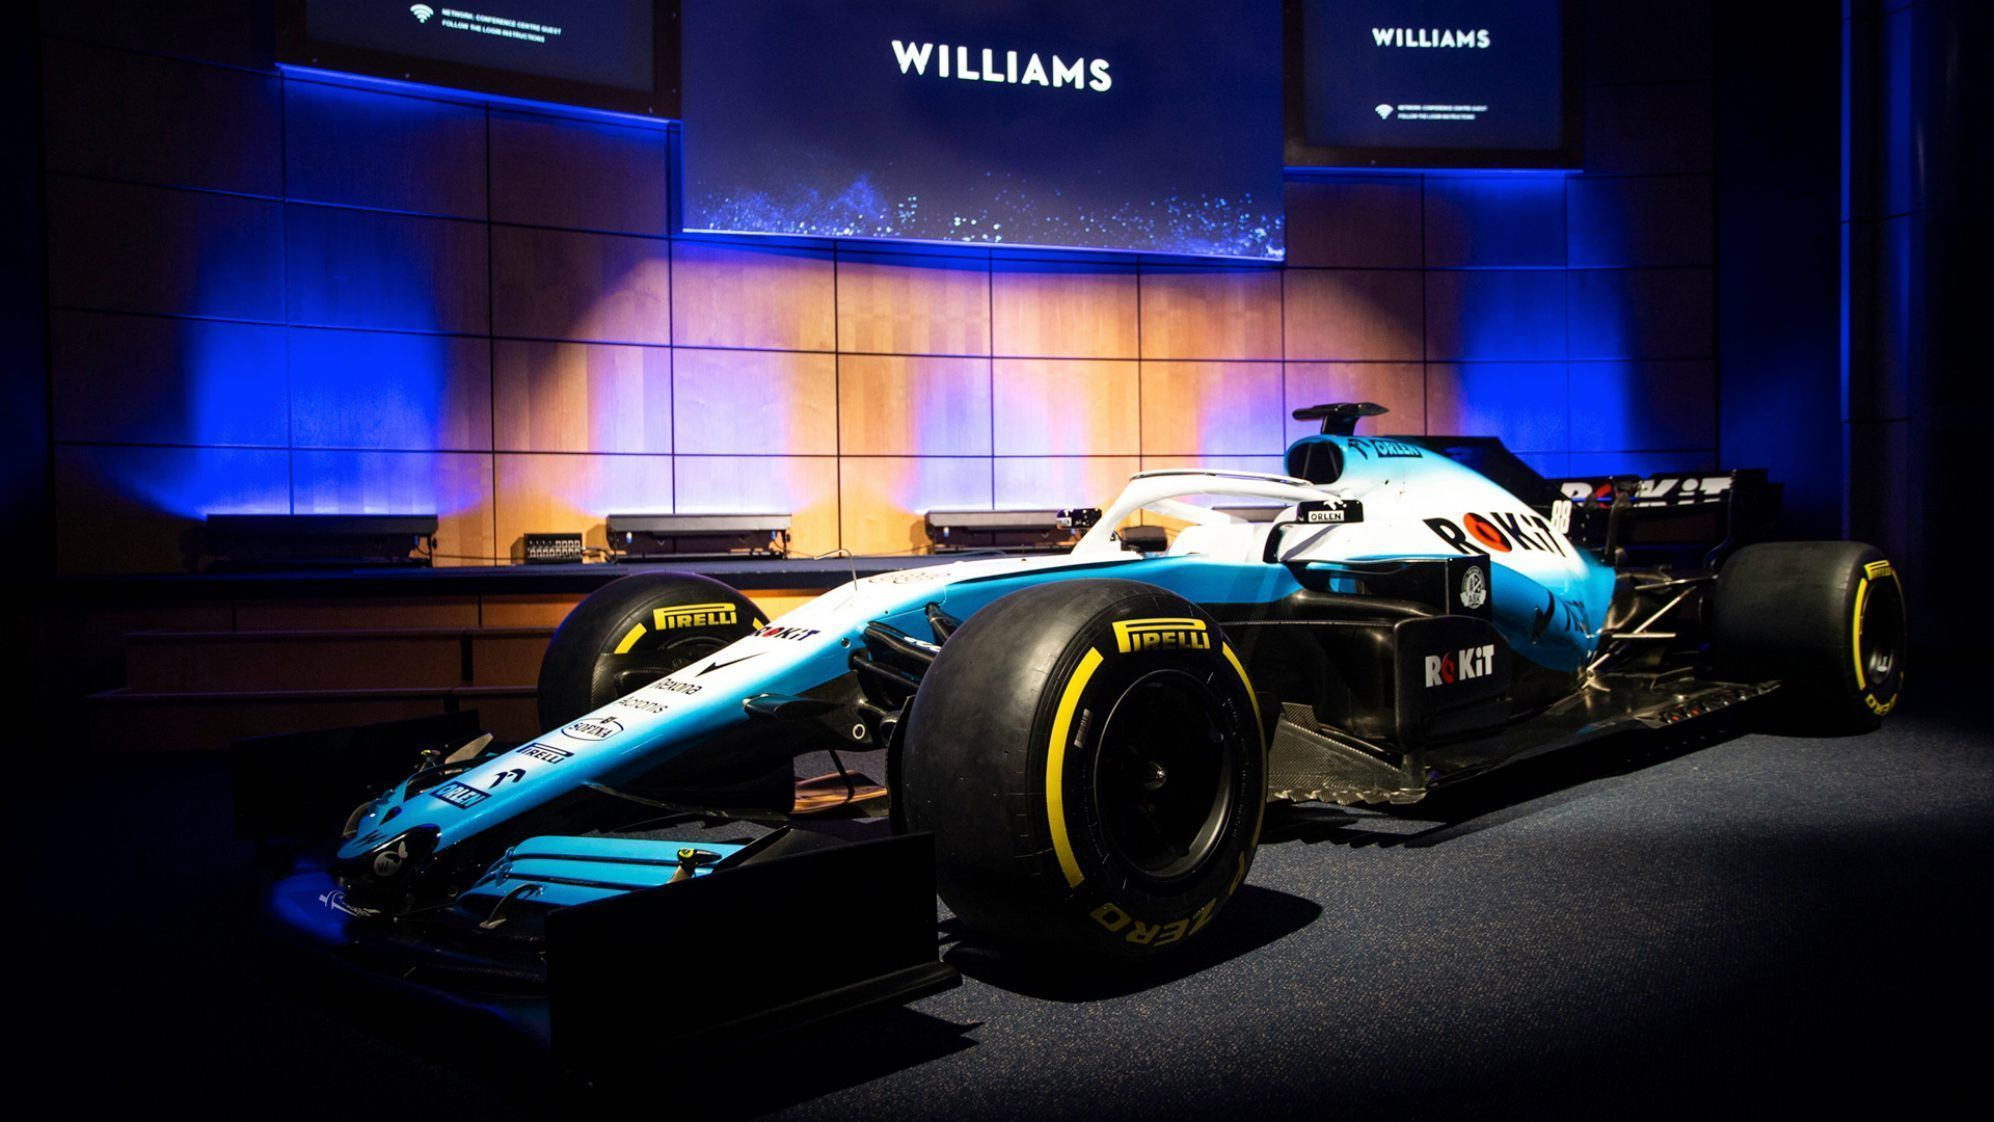 2019 ROKiT Williams F1 car and livery